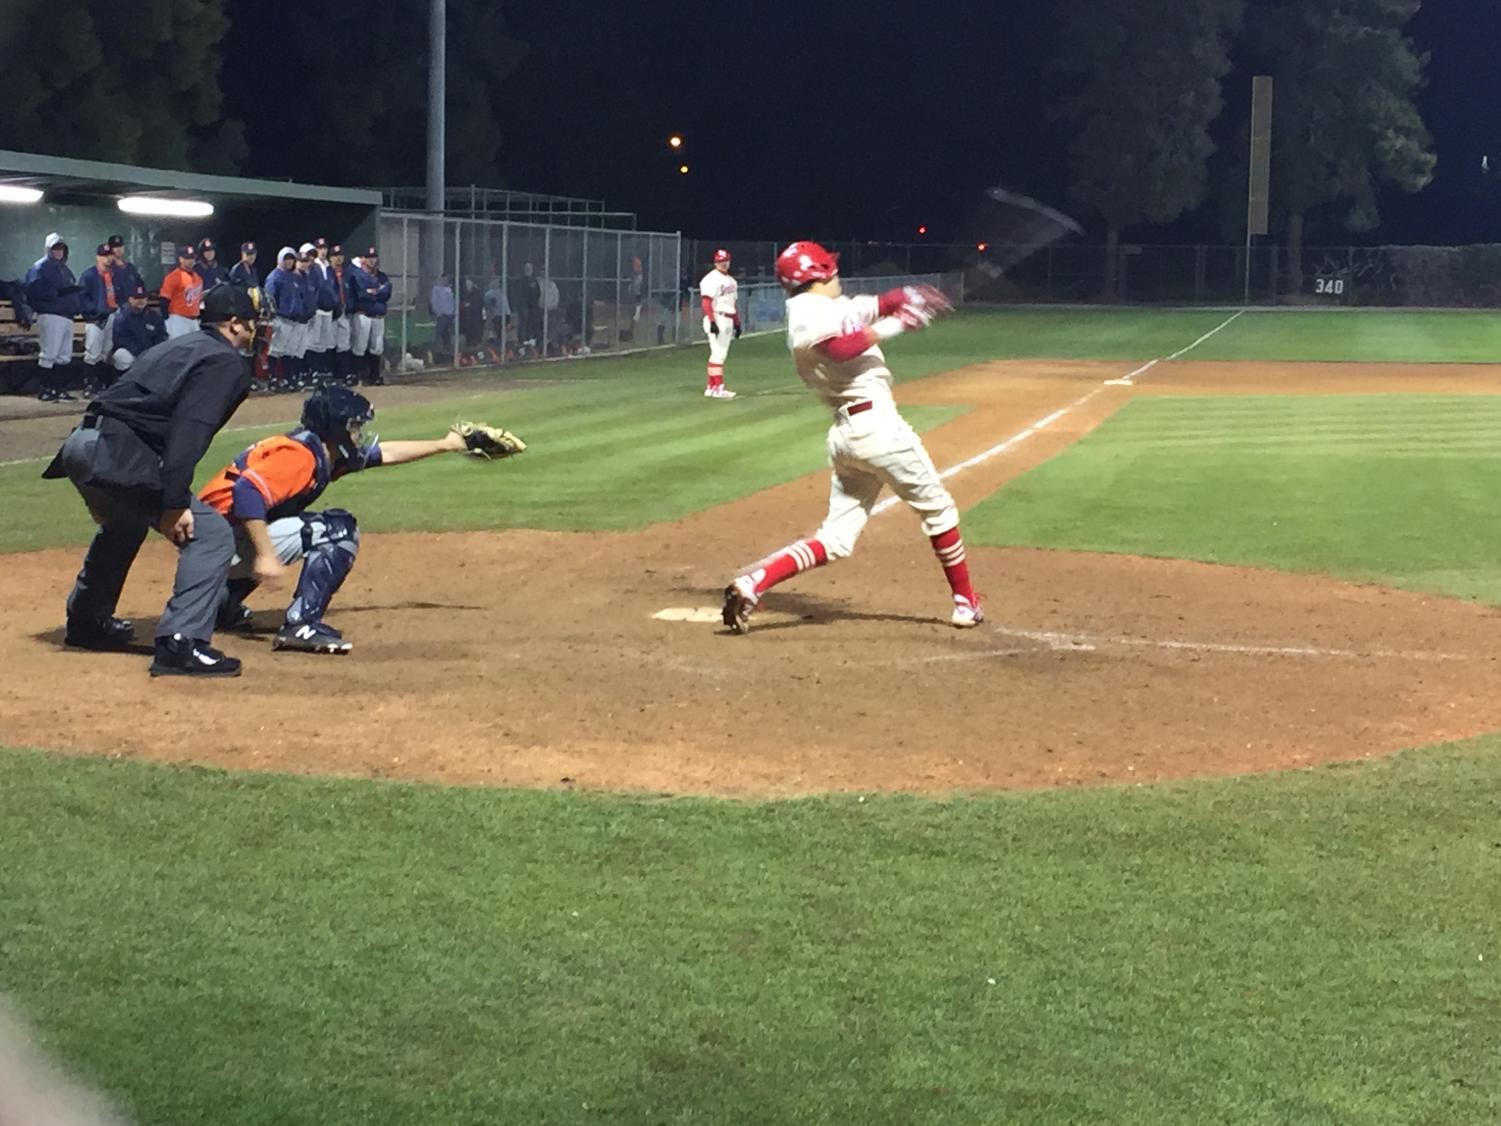 Brycin Hernandez, Outfielder, hits a pop-up to short stop to make the third out in the 7th inning